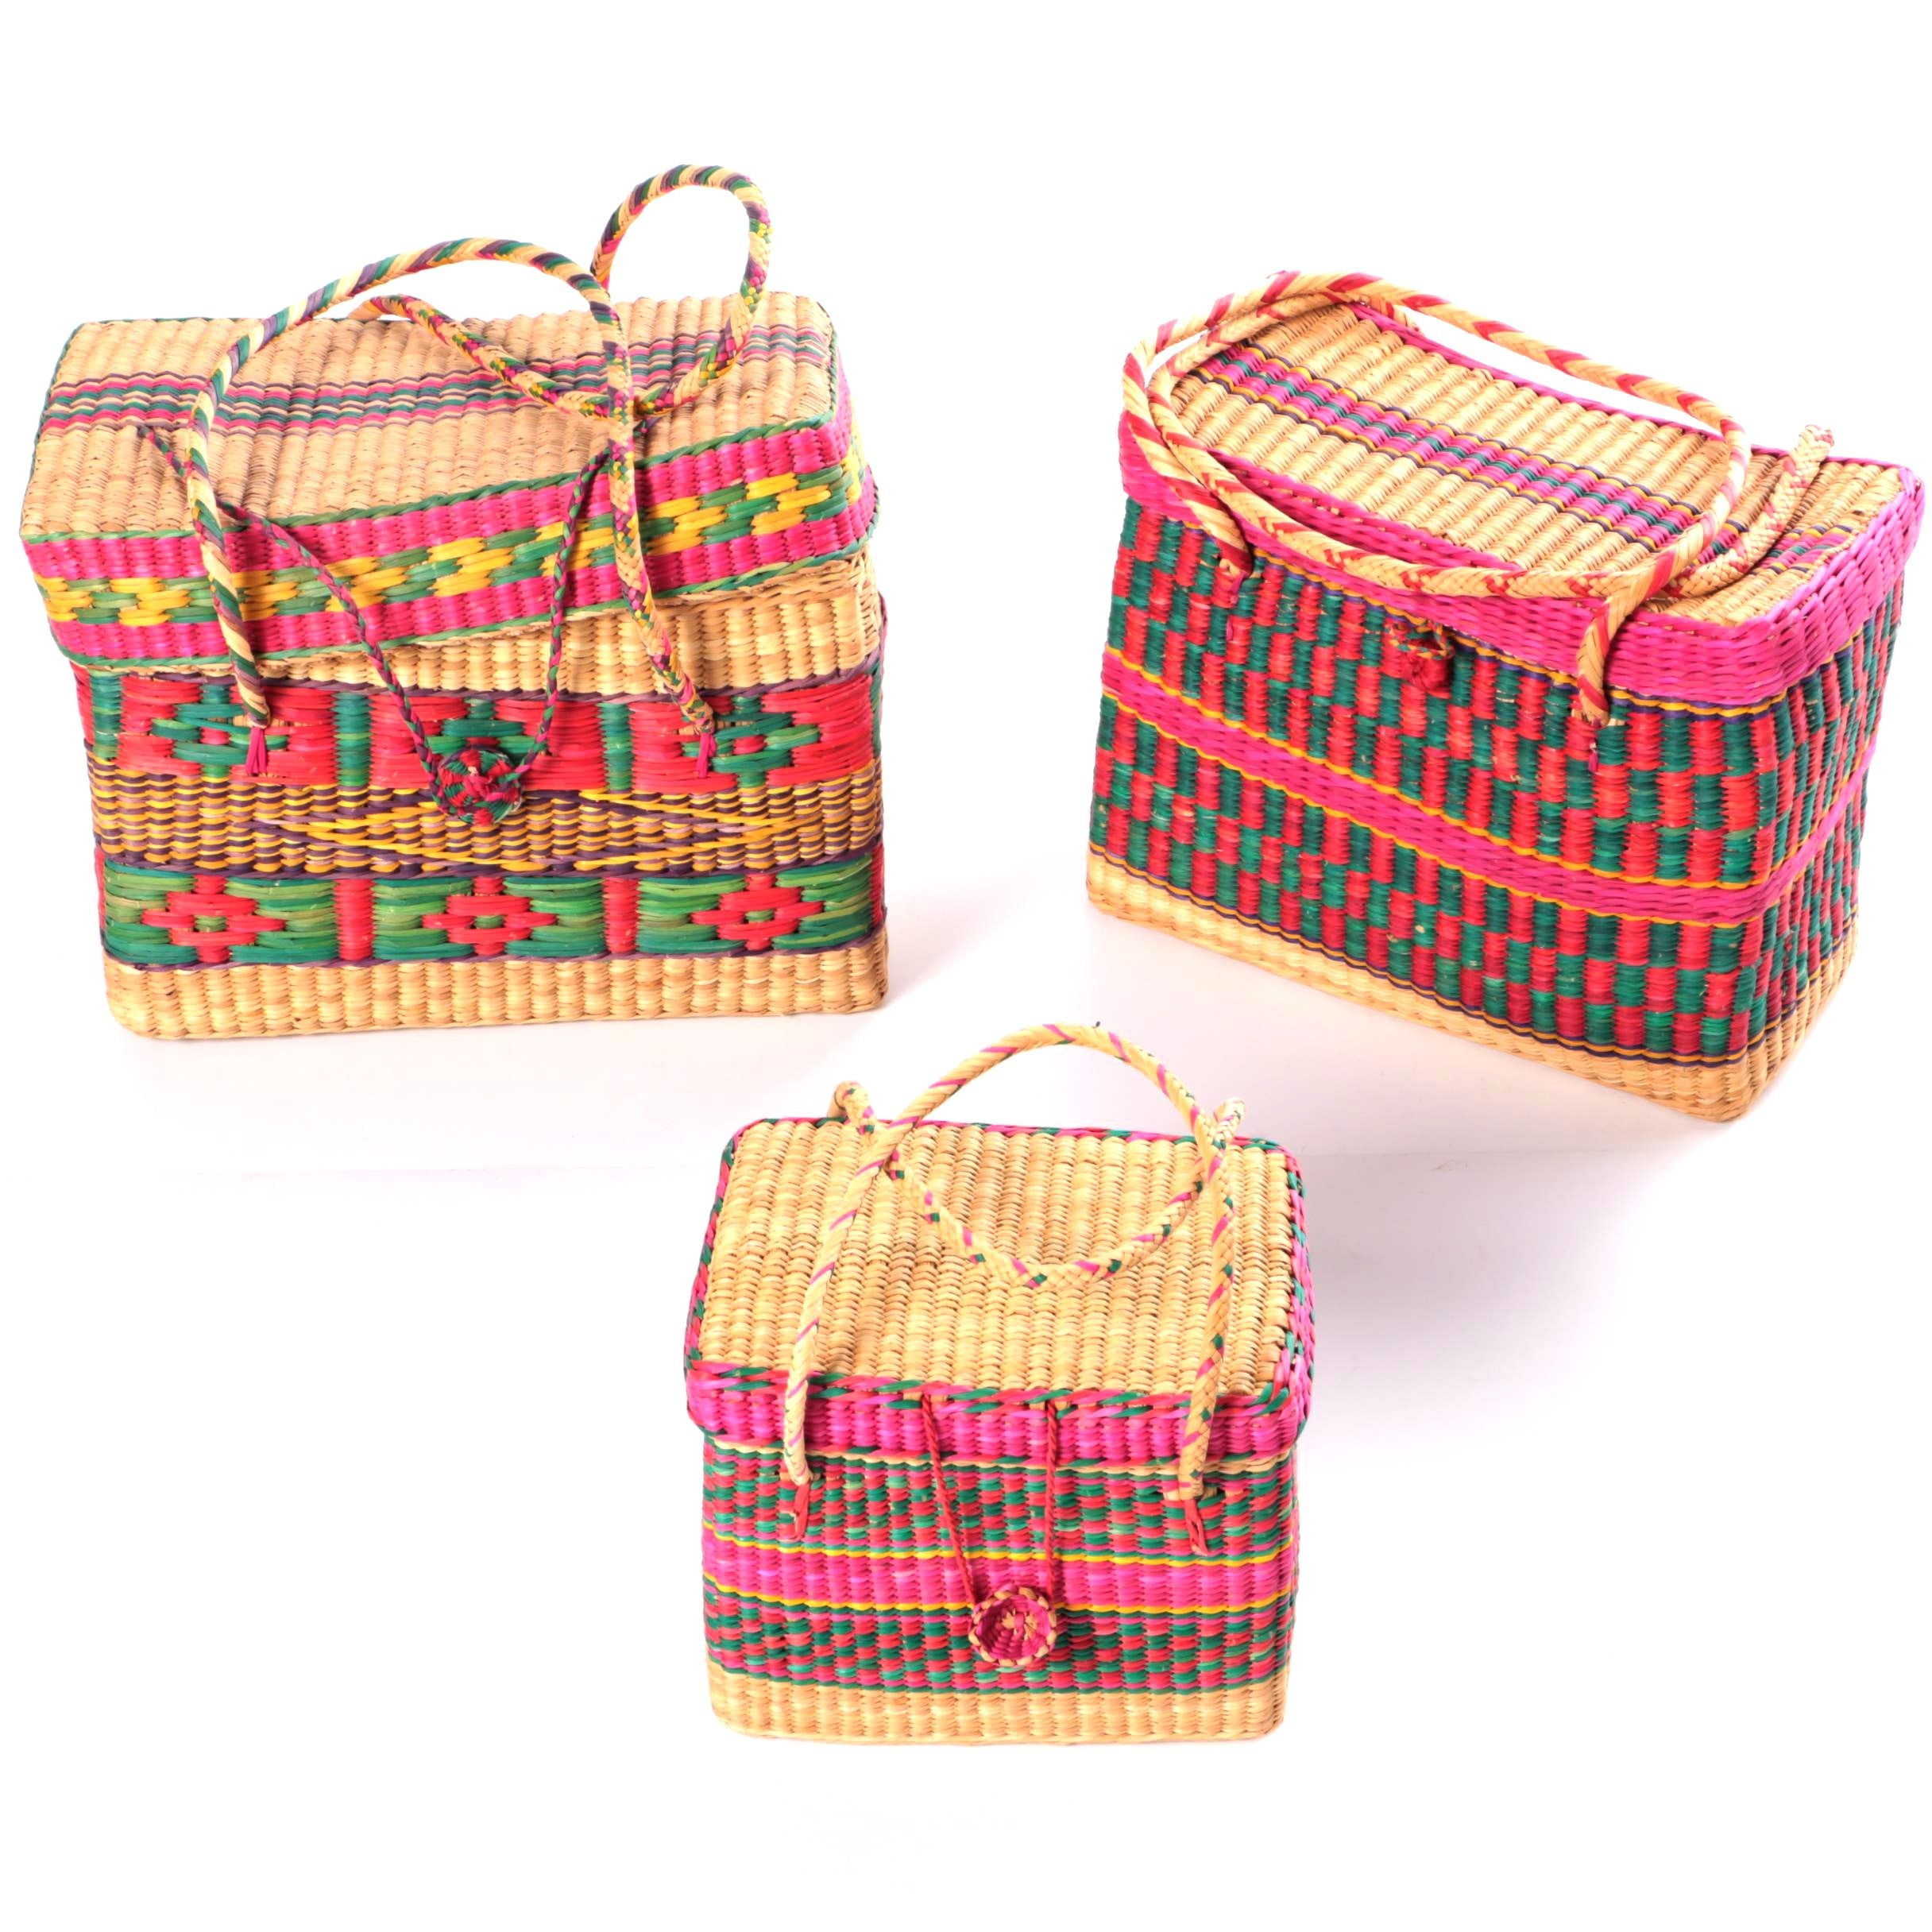 Collection of Three Pink and Green Woven Handbags